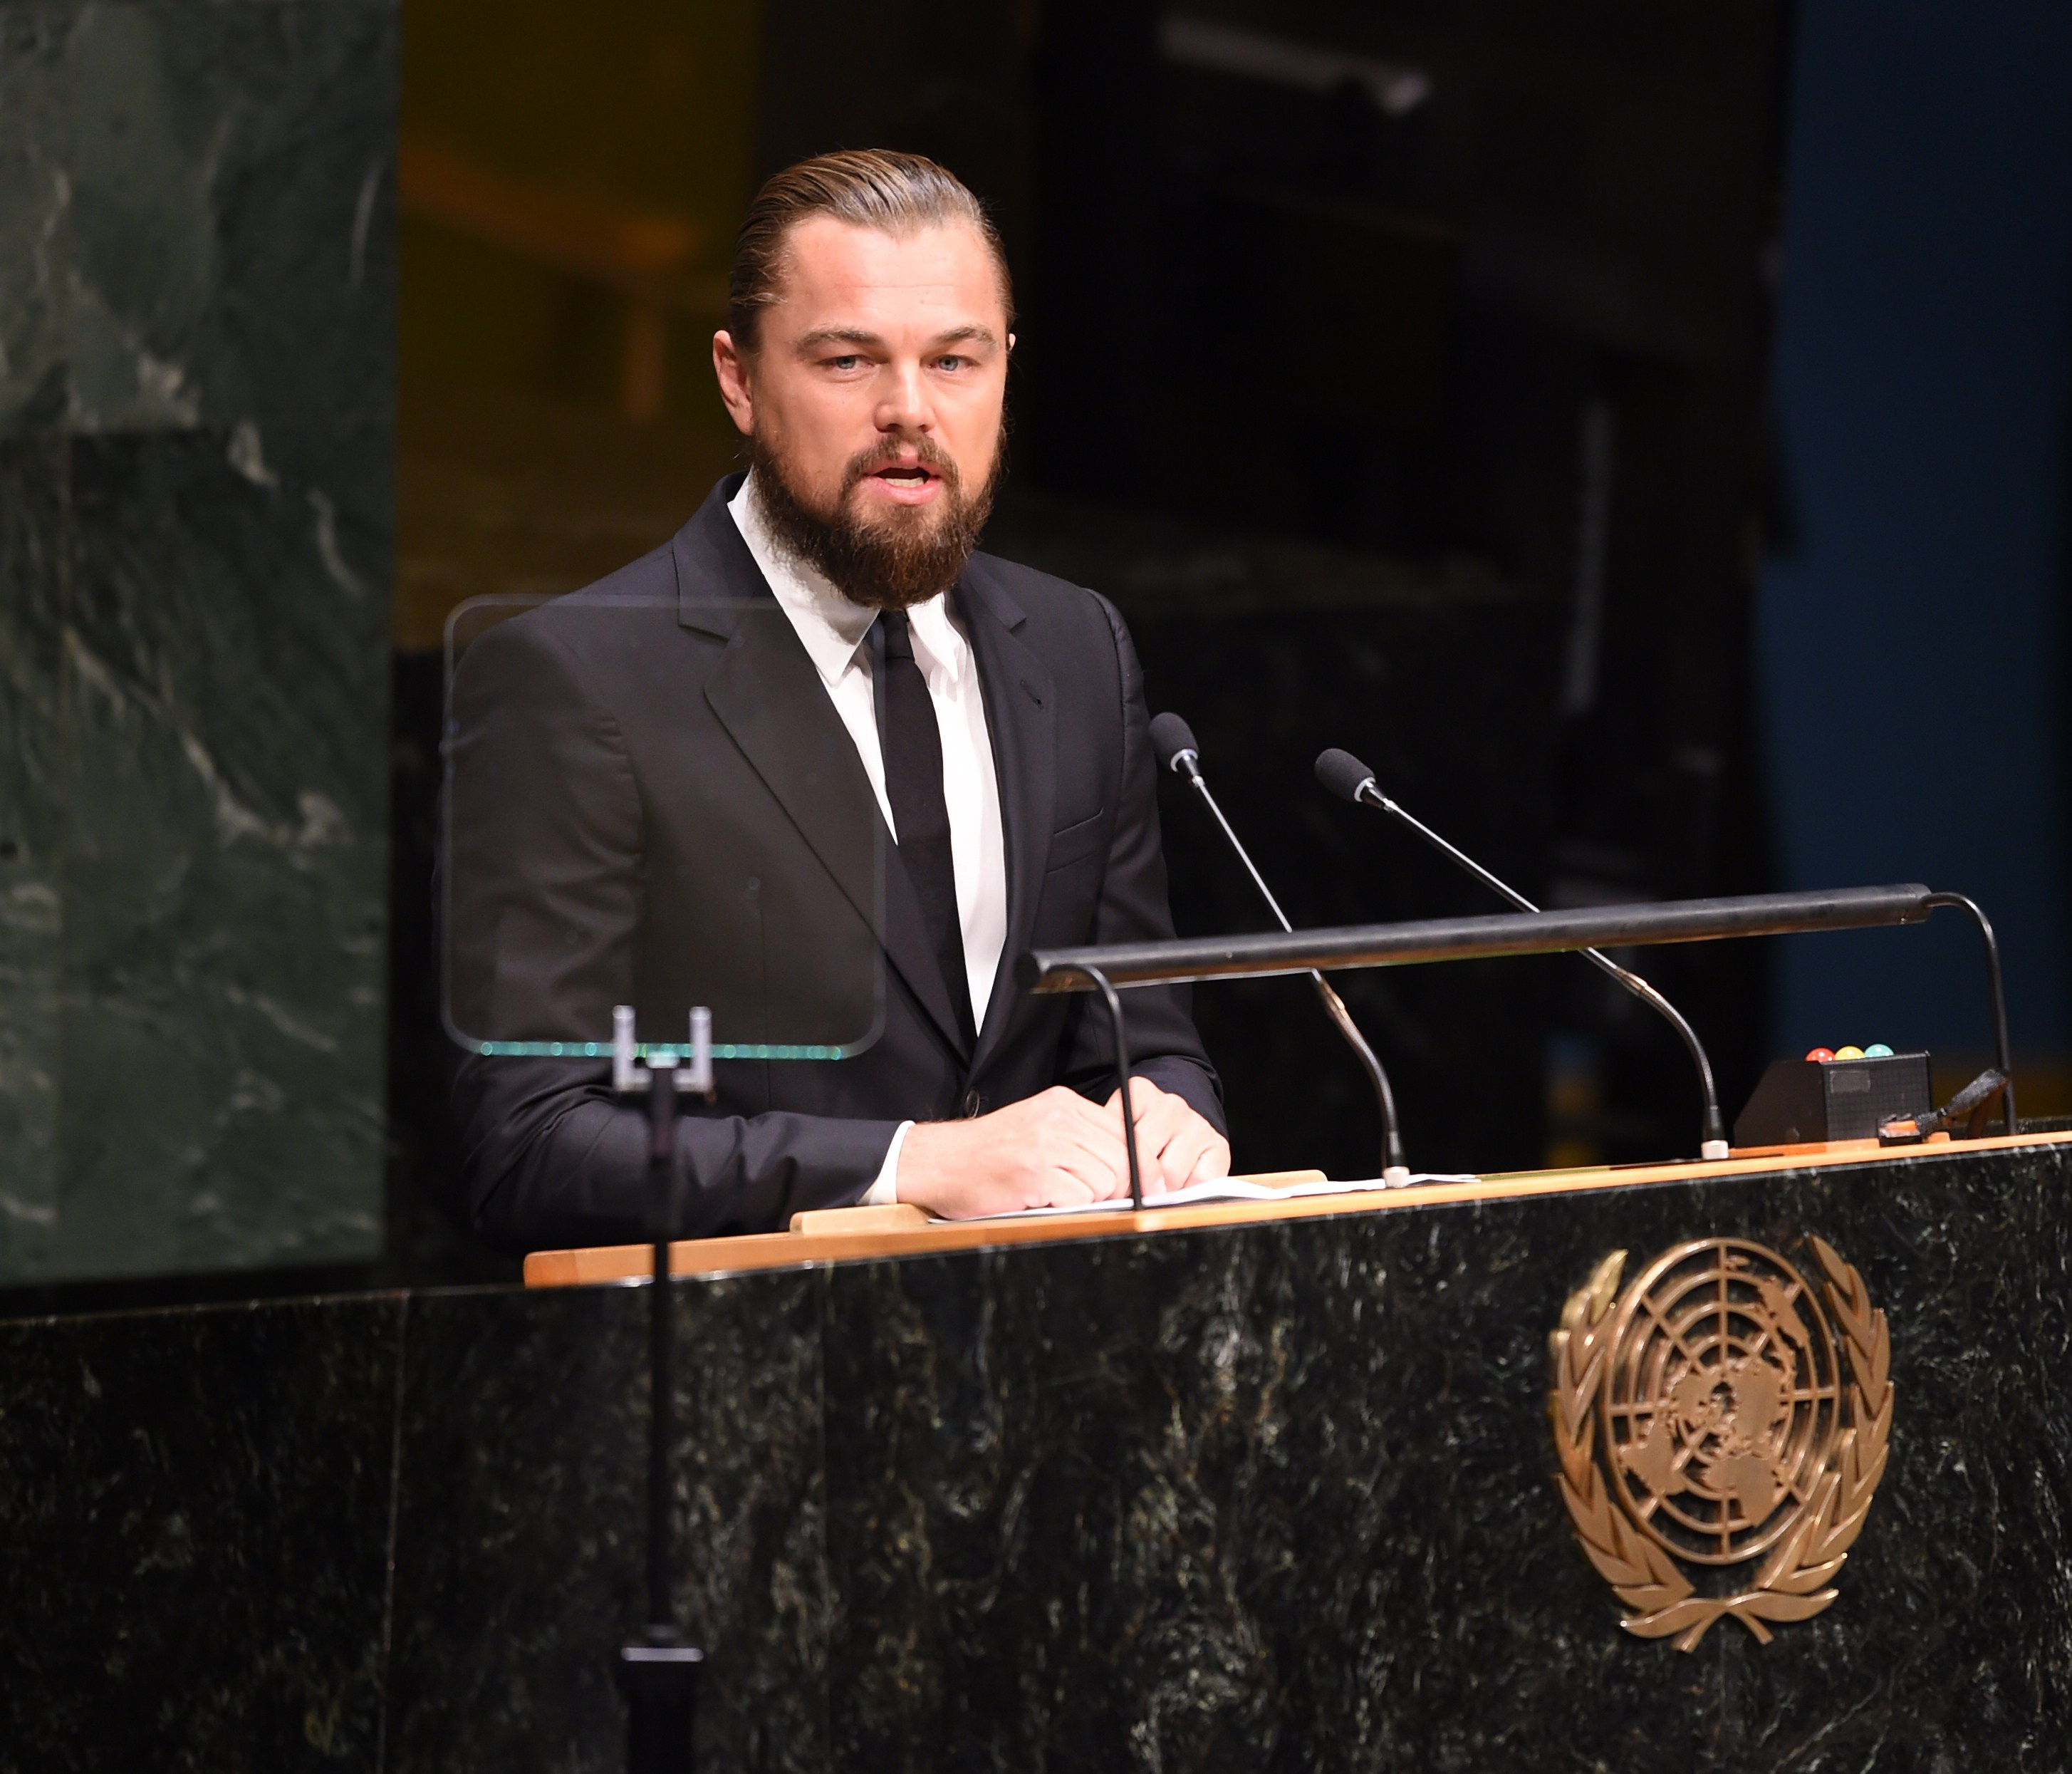 Leo partners with Netflix for documentary projects